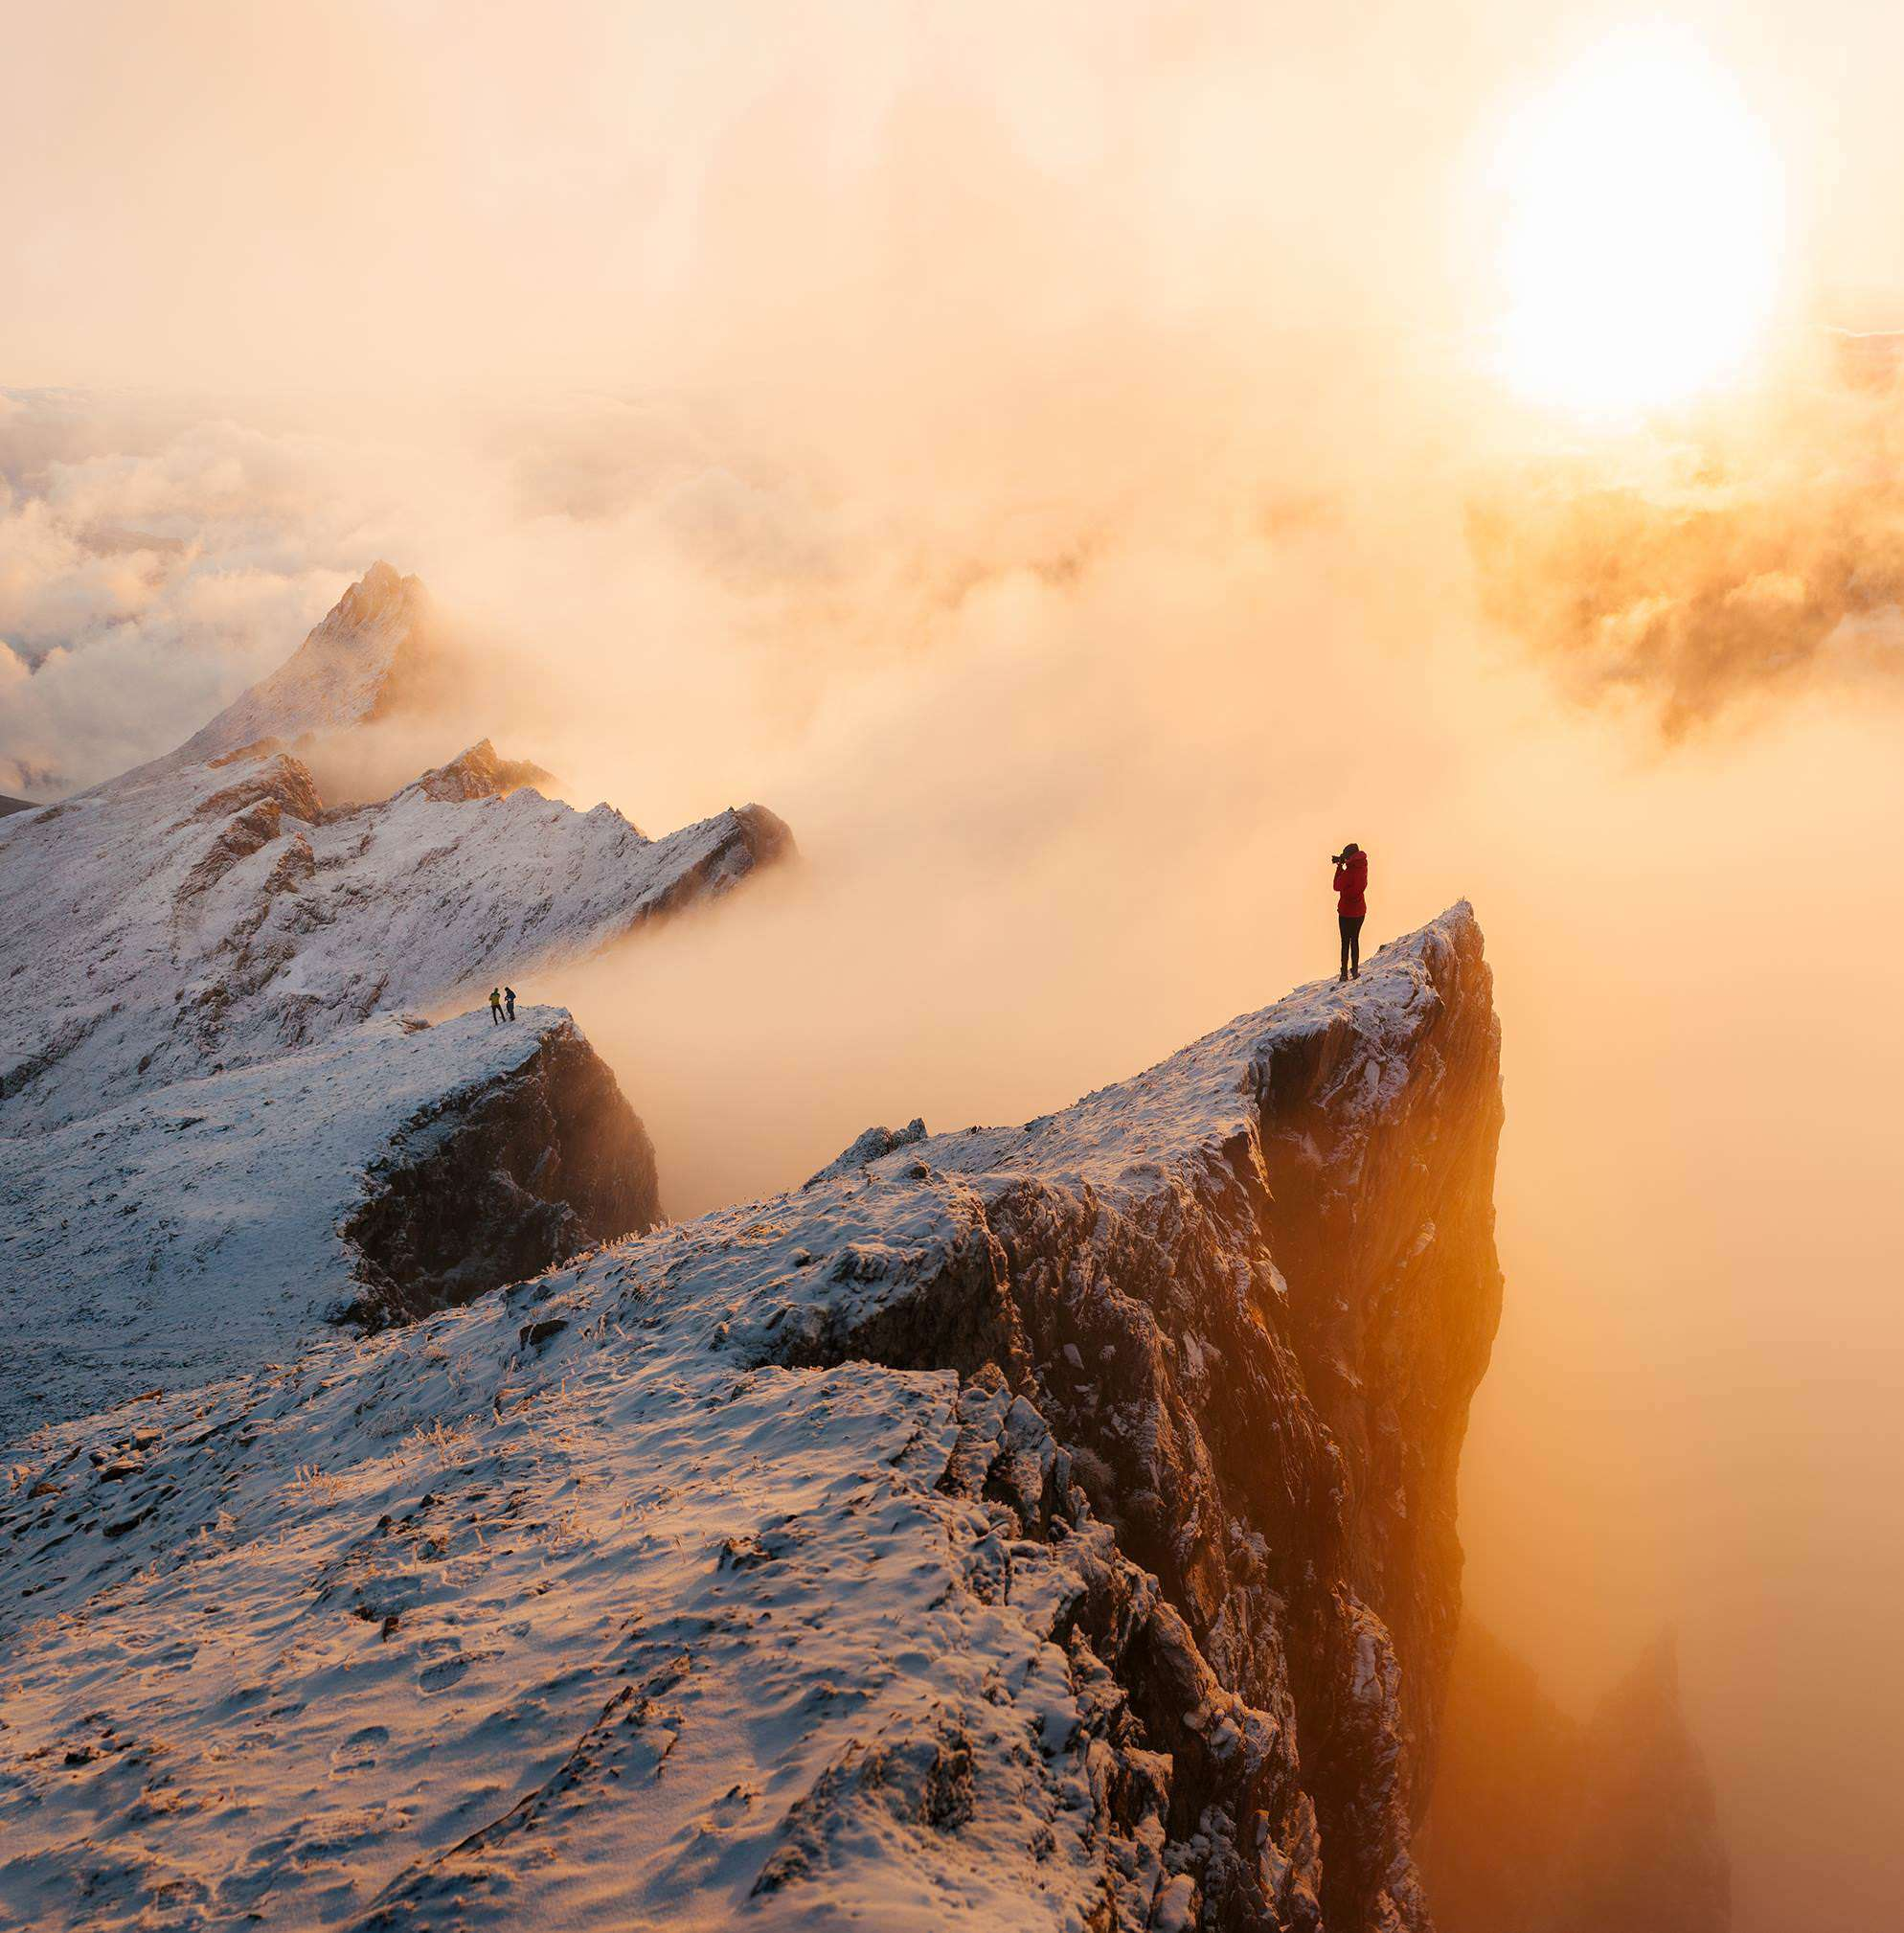 A woman standing on the edge of a snowy mountain is photographing a couple while the clouds cover the sun.